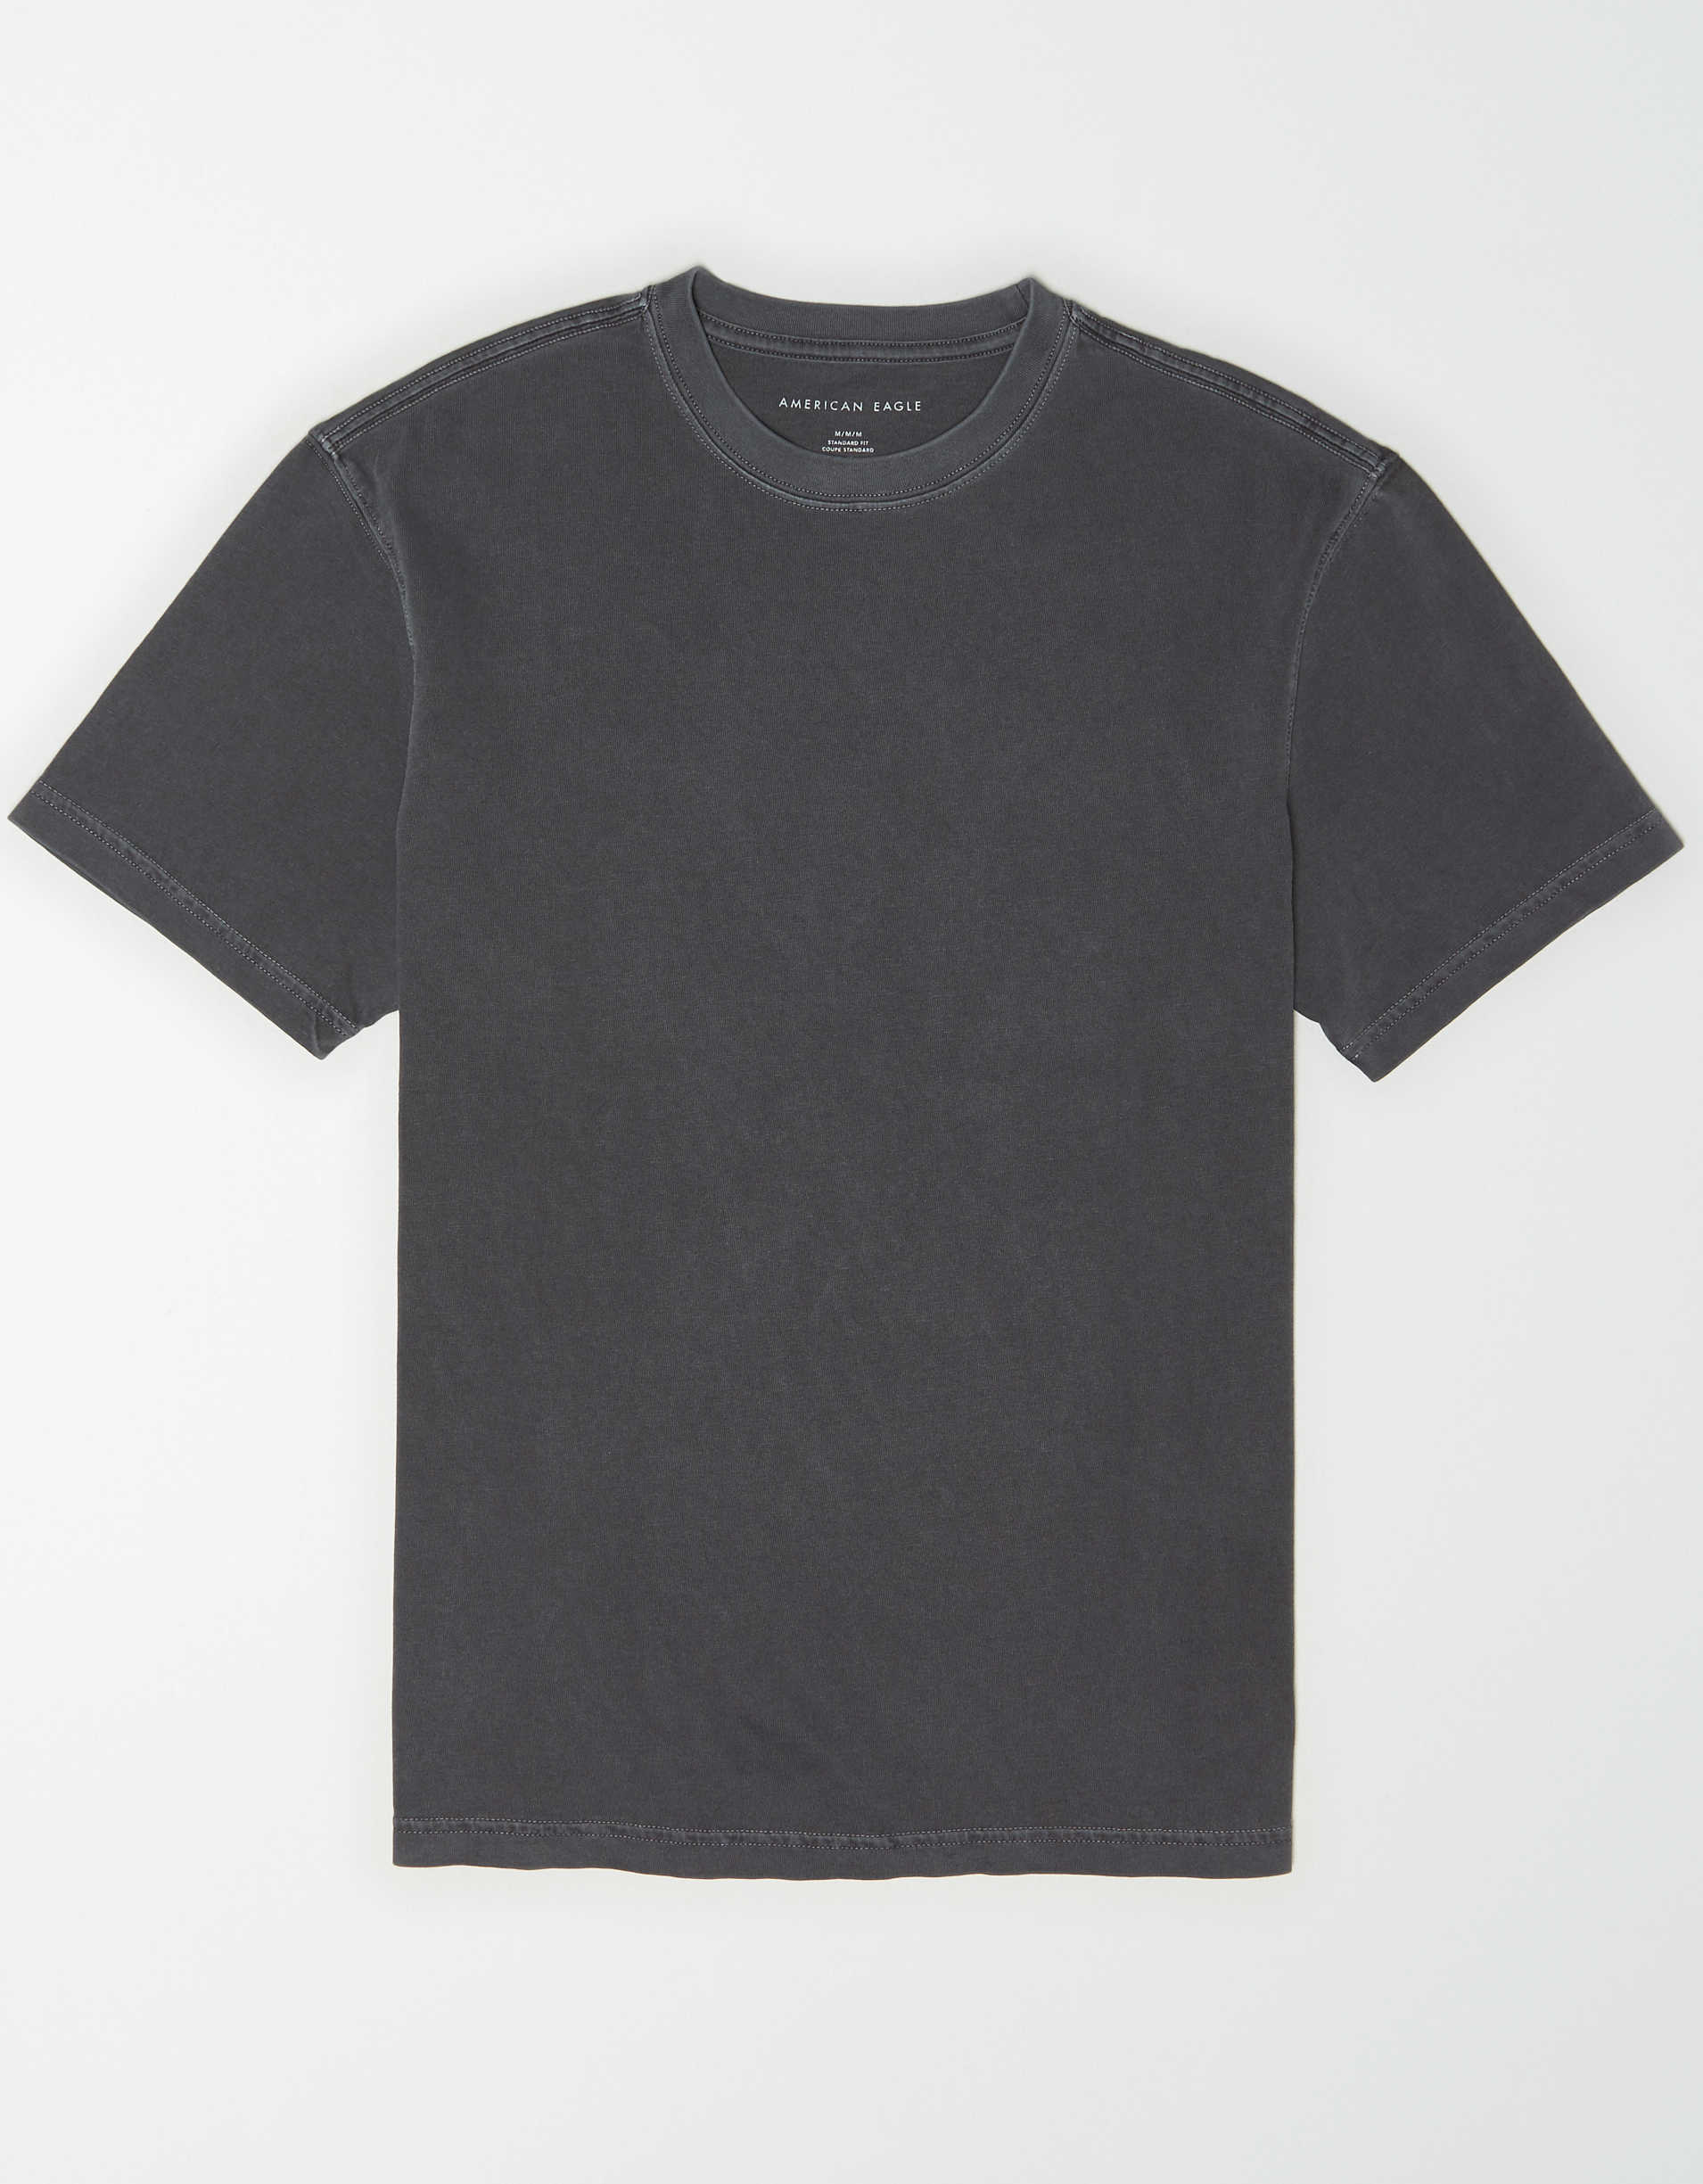 AE Super Soft Short-Sleeve T-Shirt